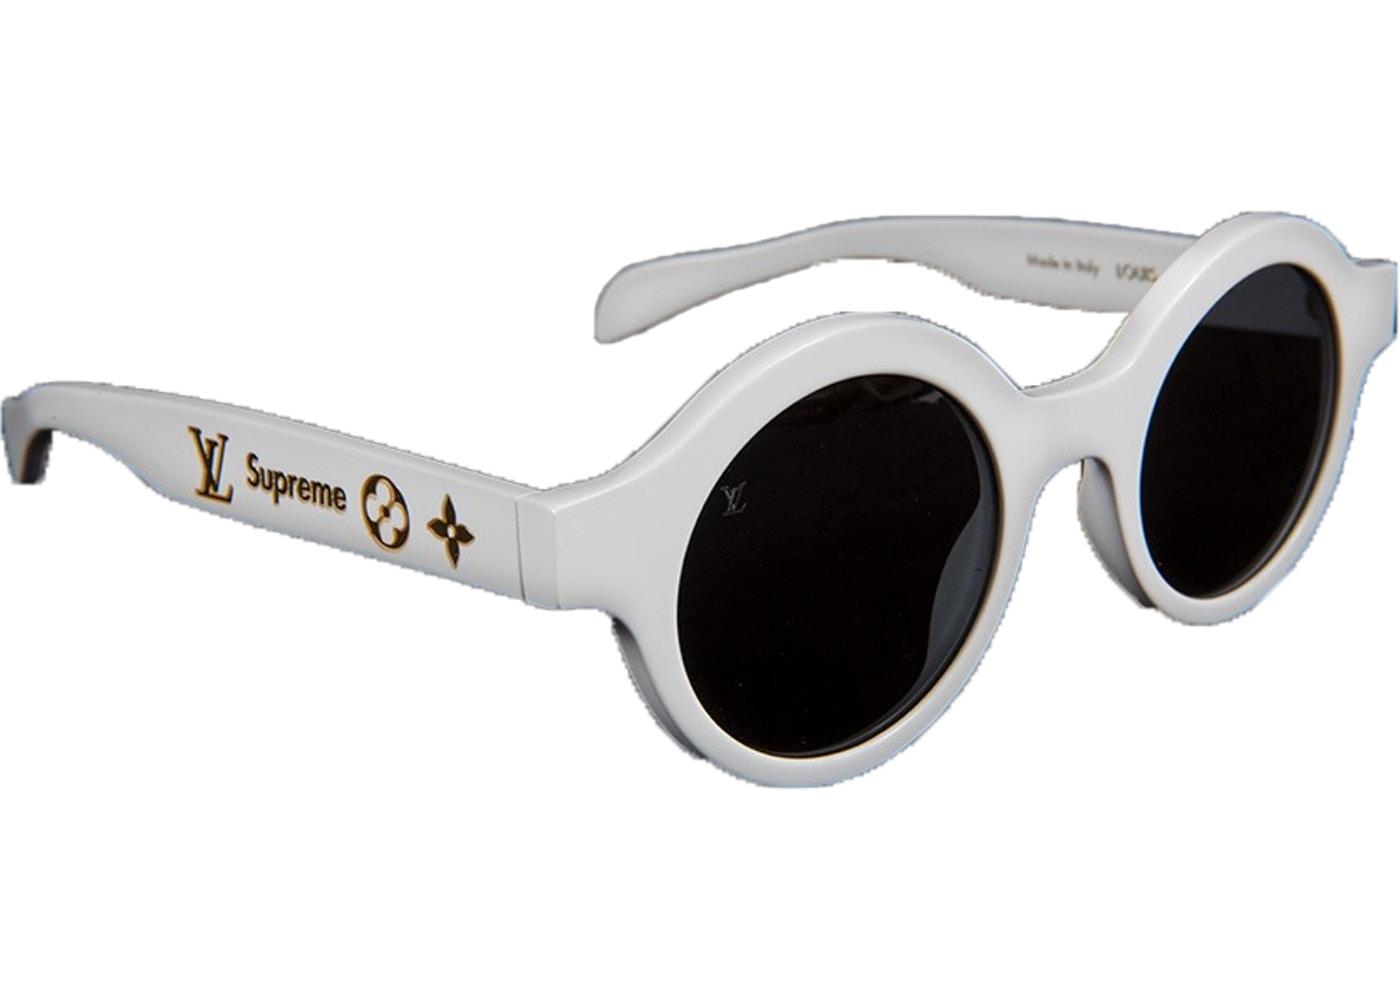 e62a569297f Sell. or Ask. View All Bids. Supreme x Louis Vuitton Downtown Sunglasses  White